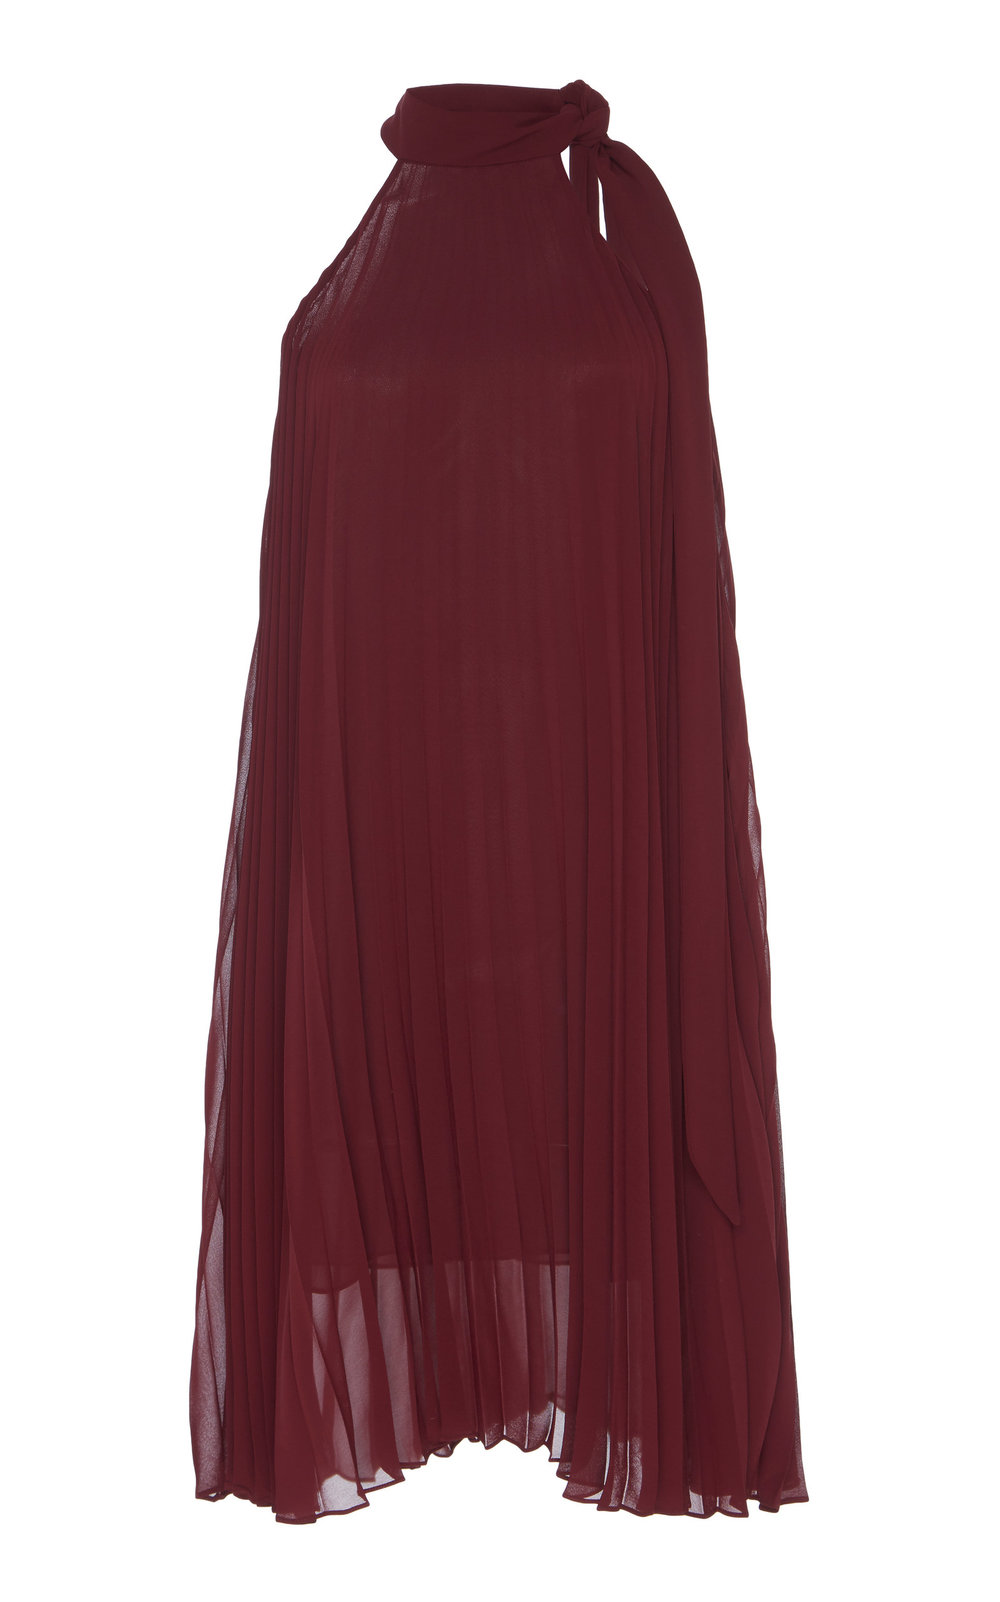 Xylosma Pleated Blouse - BURGUNDY  This elegant blouse features a relaxed fit and bow tie collar. Pressed with sharp pleats, this semi sheer piece flares out into a subtle A-line silhouette, offering both clean and refined look.